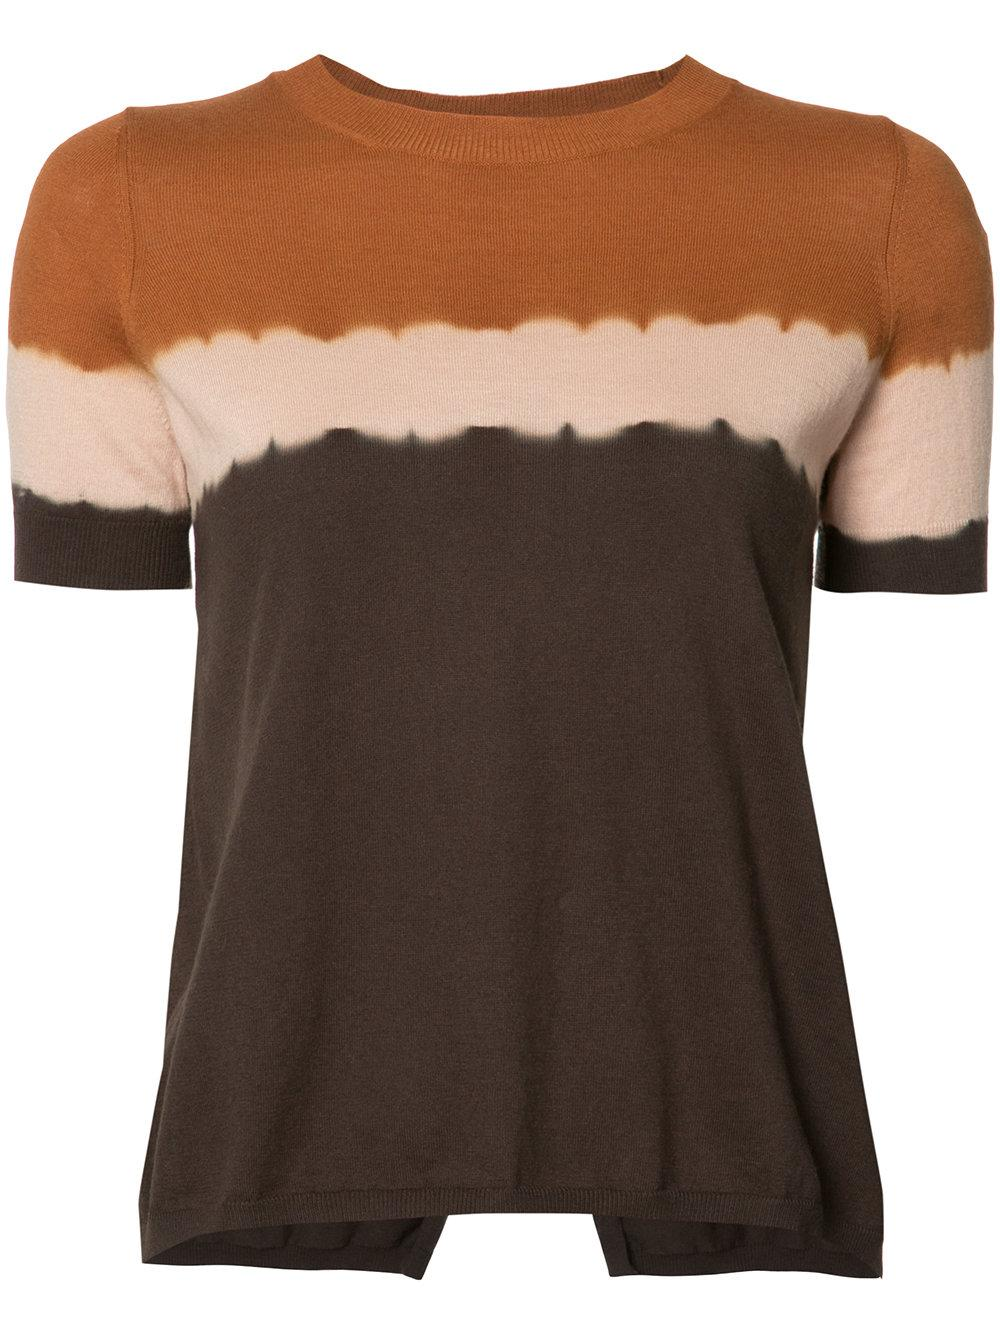 Lyst Toile Isabel Marant Gradient Effect T Shirt In Brown